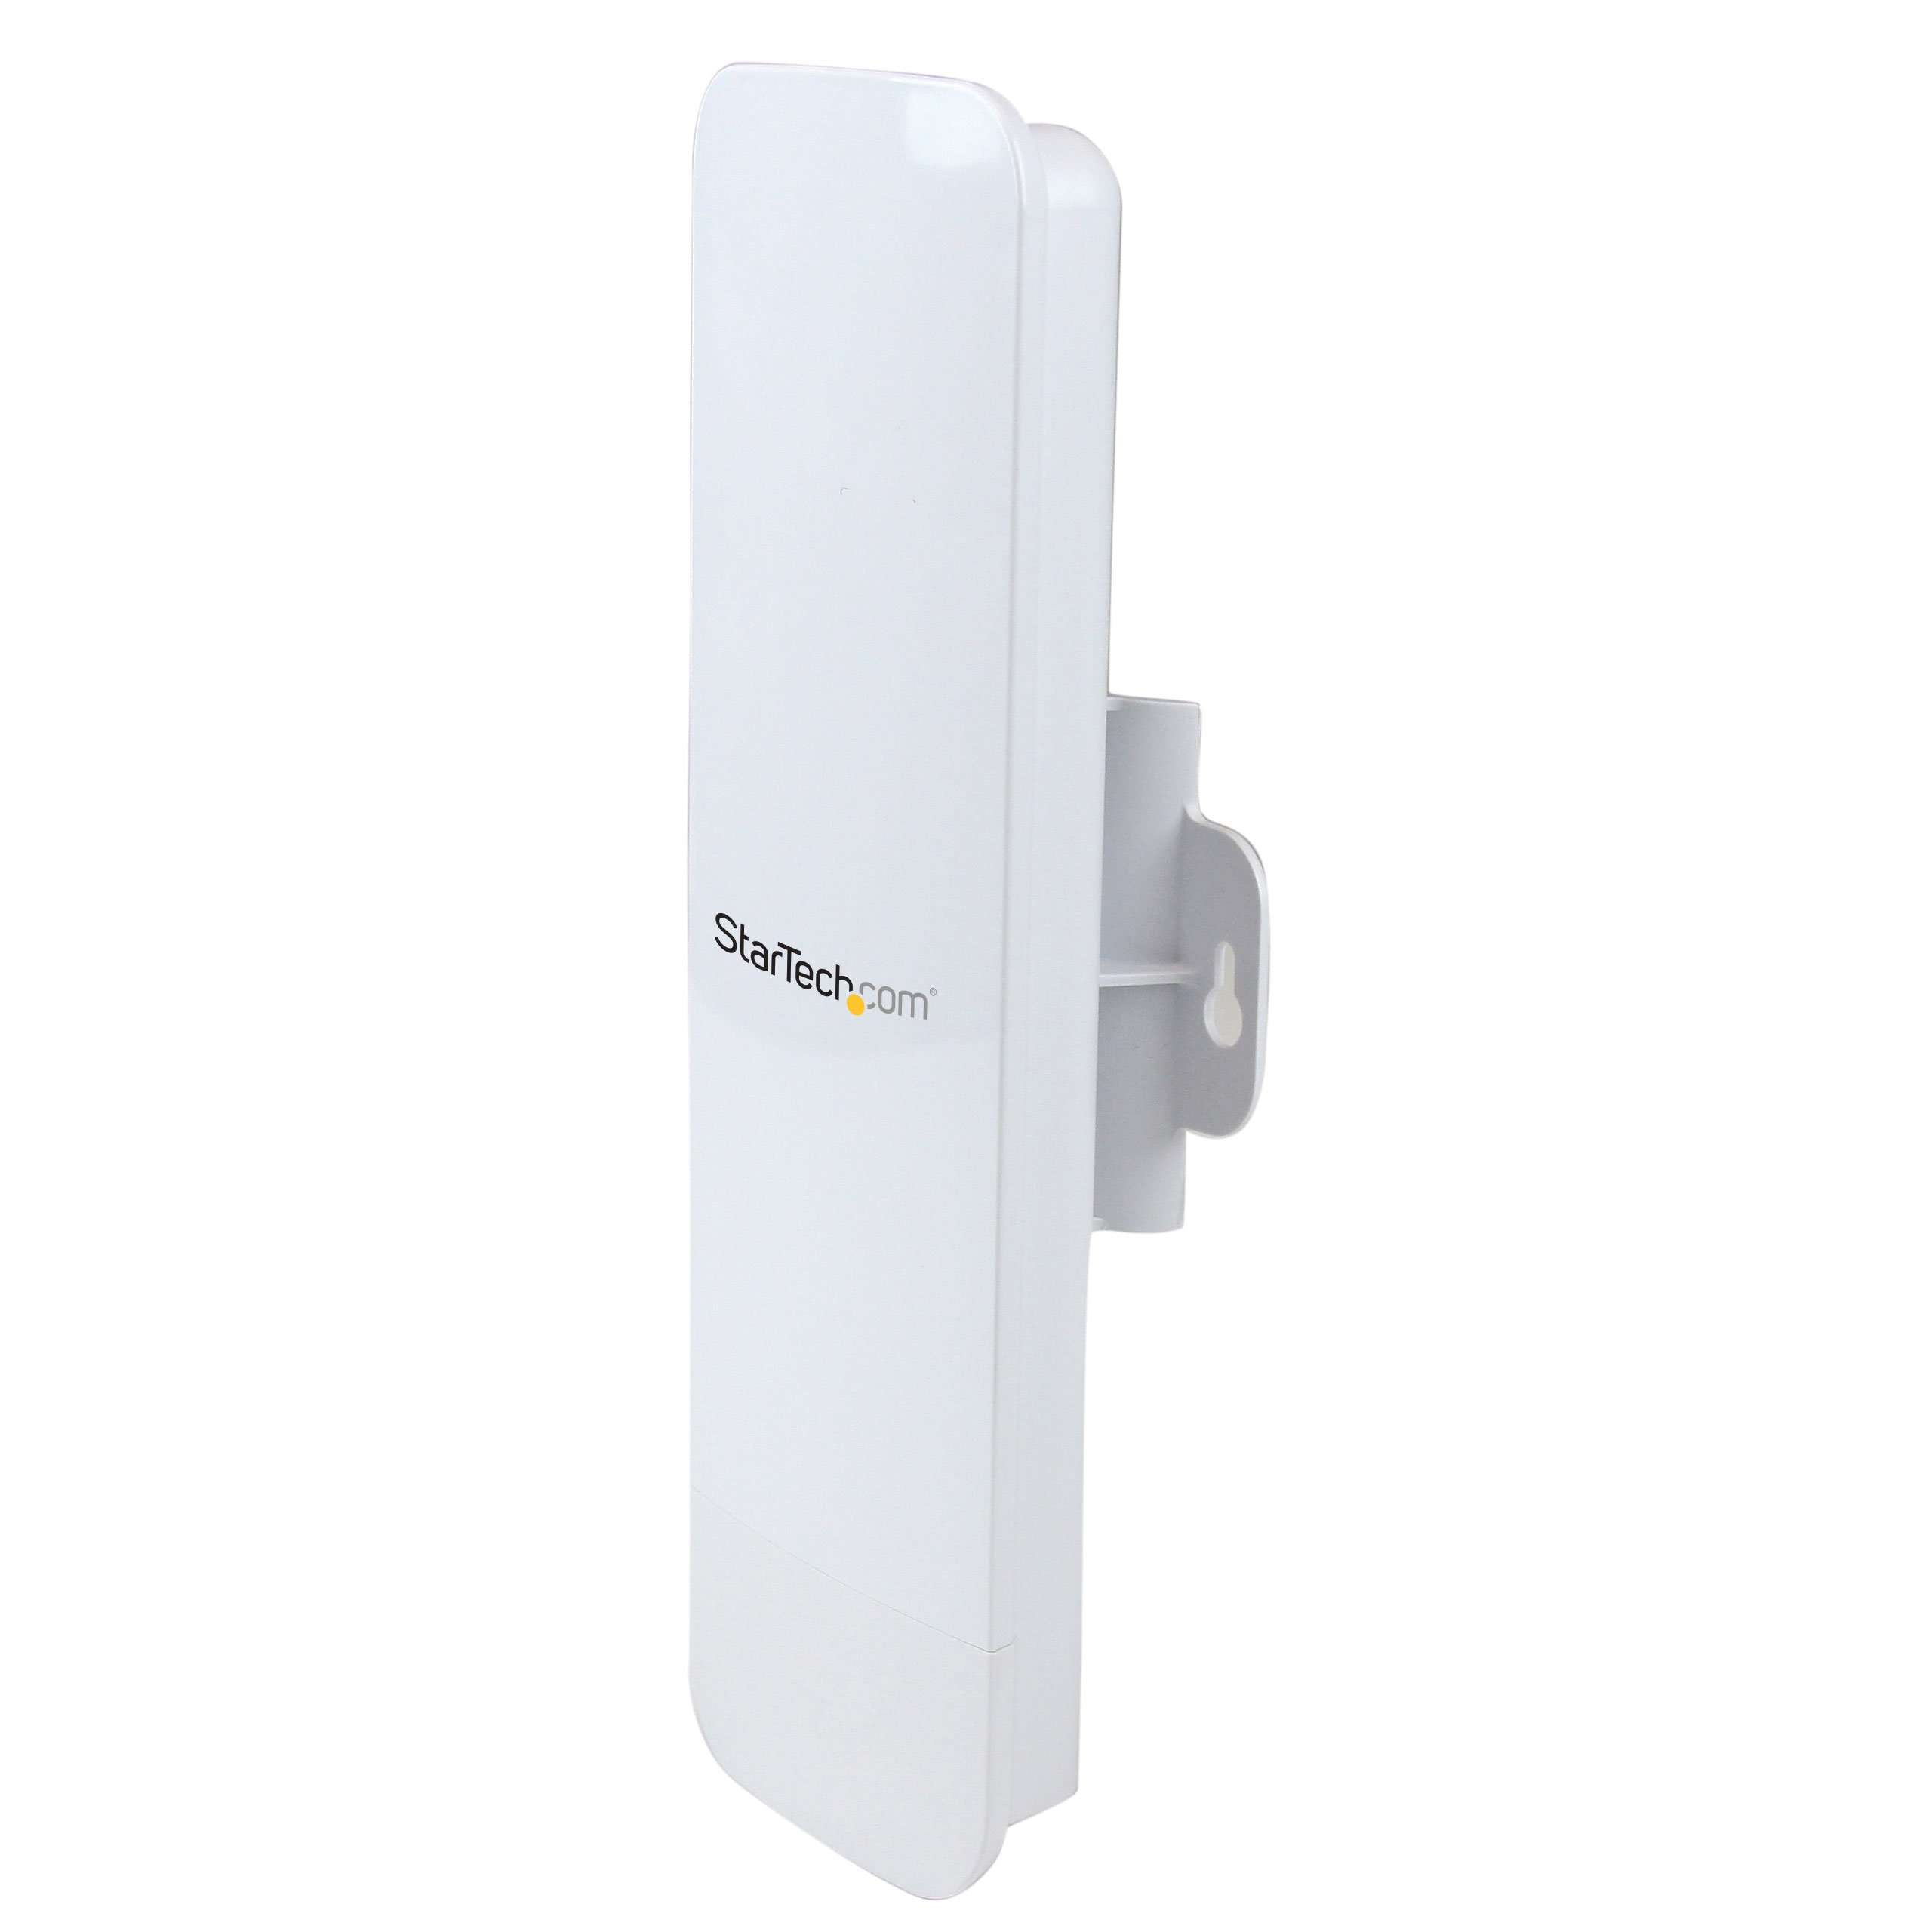 Outdoor 300 Mbps 2T2R Wireless-N Access Point - 5GHz 802.11a/n WiFi AP - Pole/Wall-Mountable Long-Range PoE-Powered AP